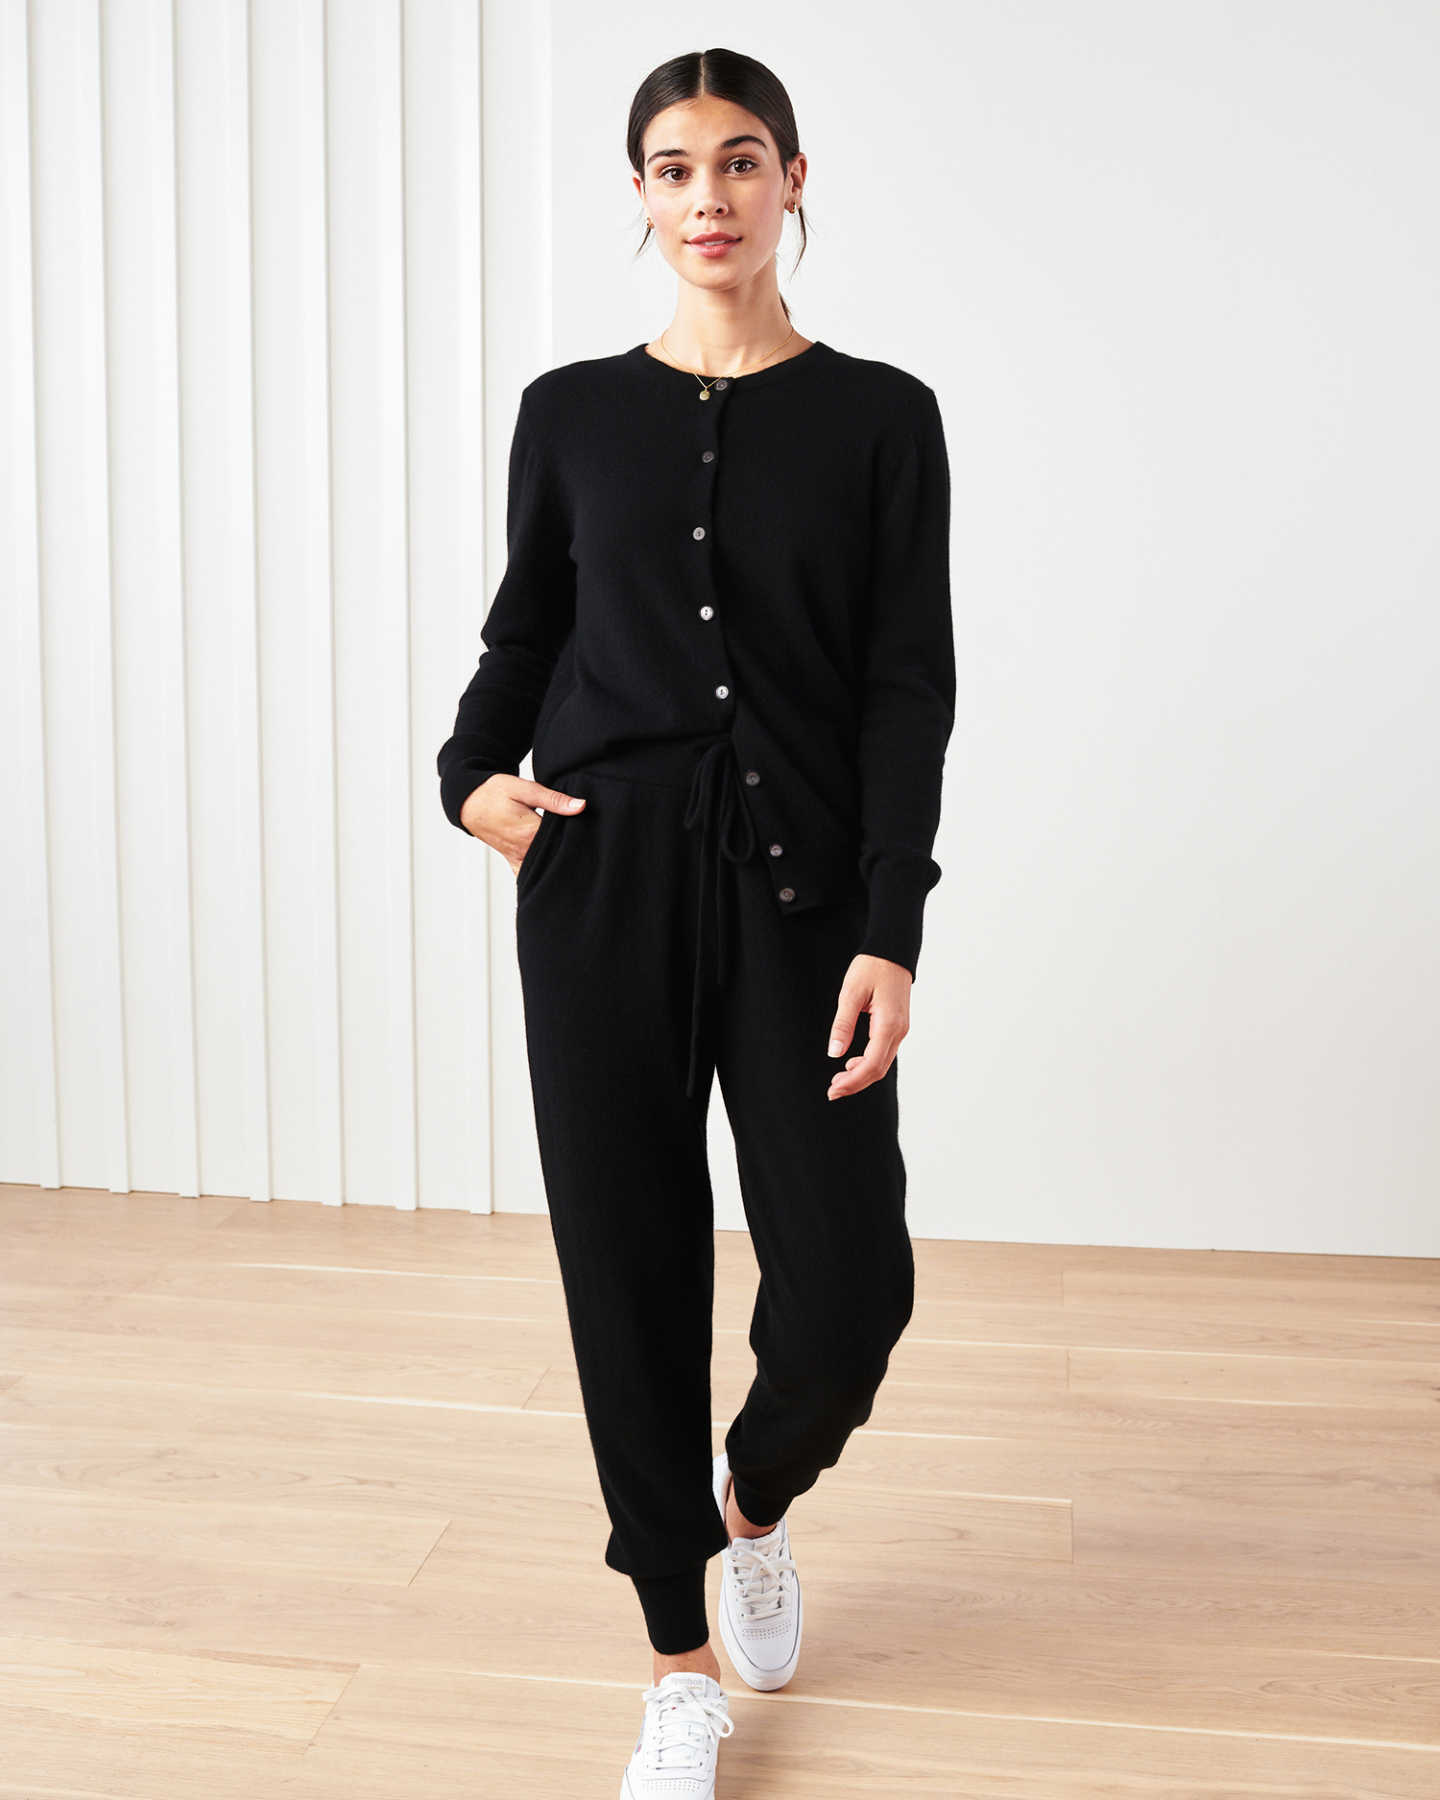 Woman wearing black cashmere cardigan sweater and black cashmere sweatpants posing